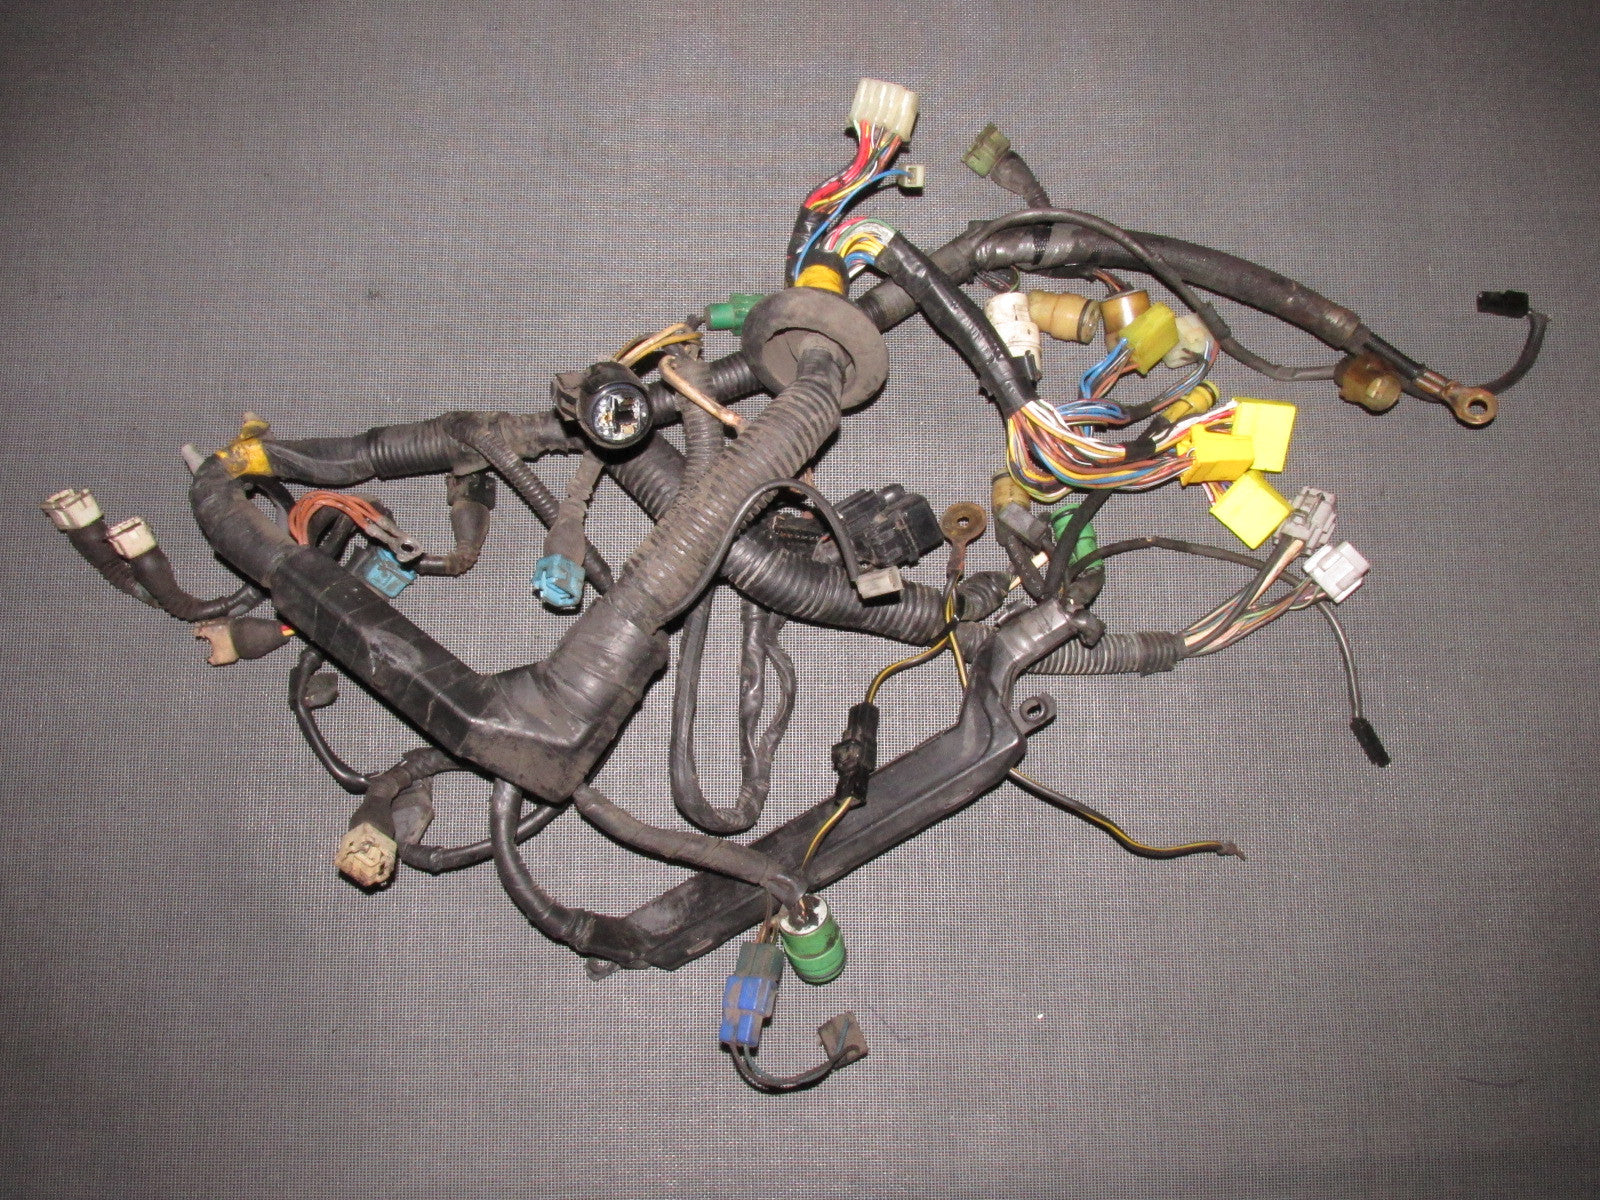 85 86 87 88 89 Toyota MR2 OEM 4AGE Engine Wiring Harness Engine Wiring Harness on suspension harness, dodge sprinter engine harness, engine harmonic balancer, oem engine wire harness, engine control module, hoist harness, bmw 2 8 engine wire harness,